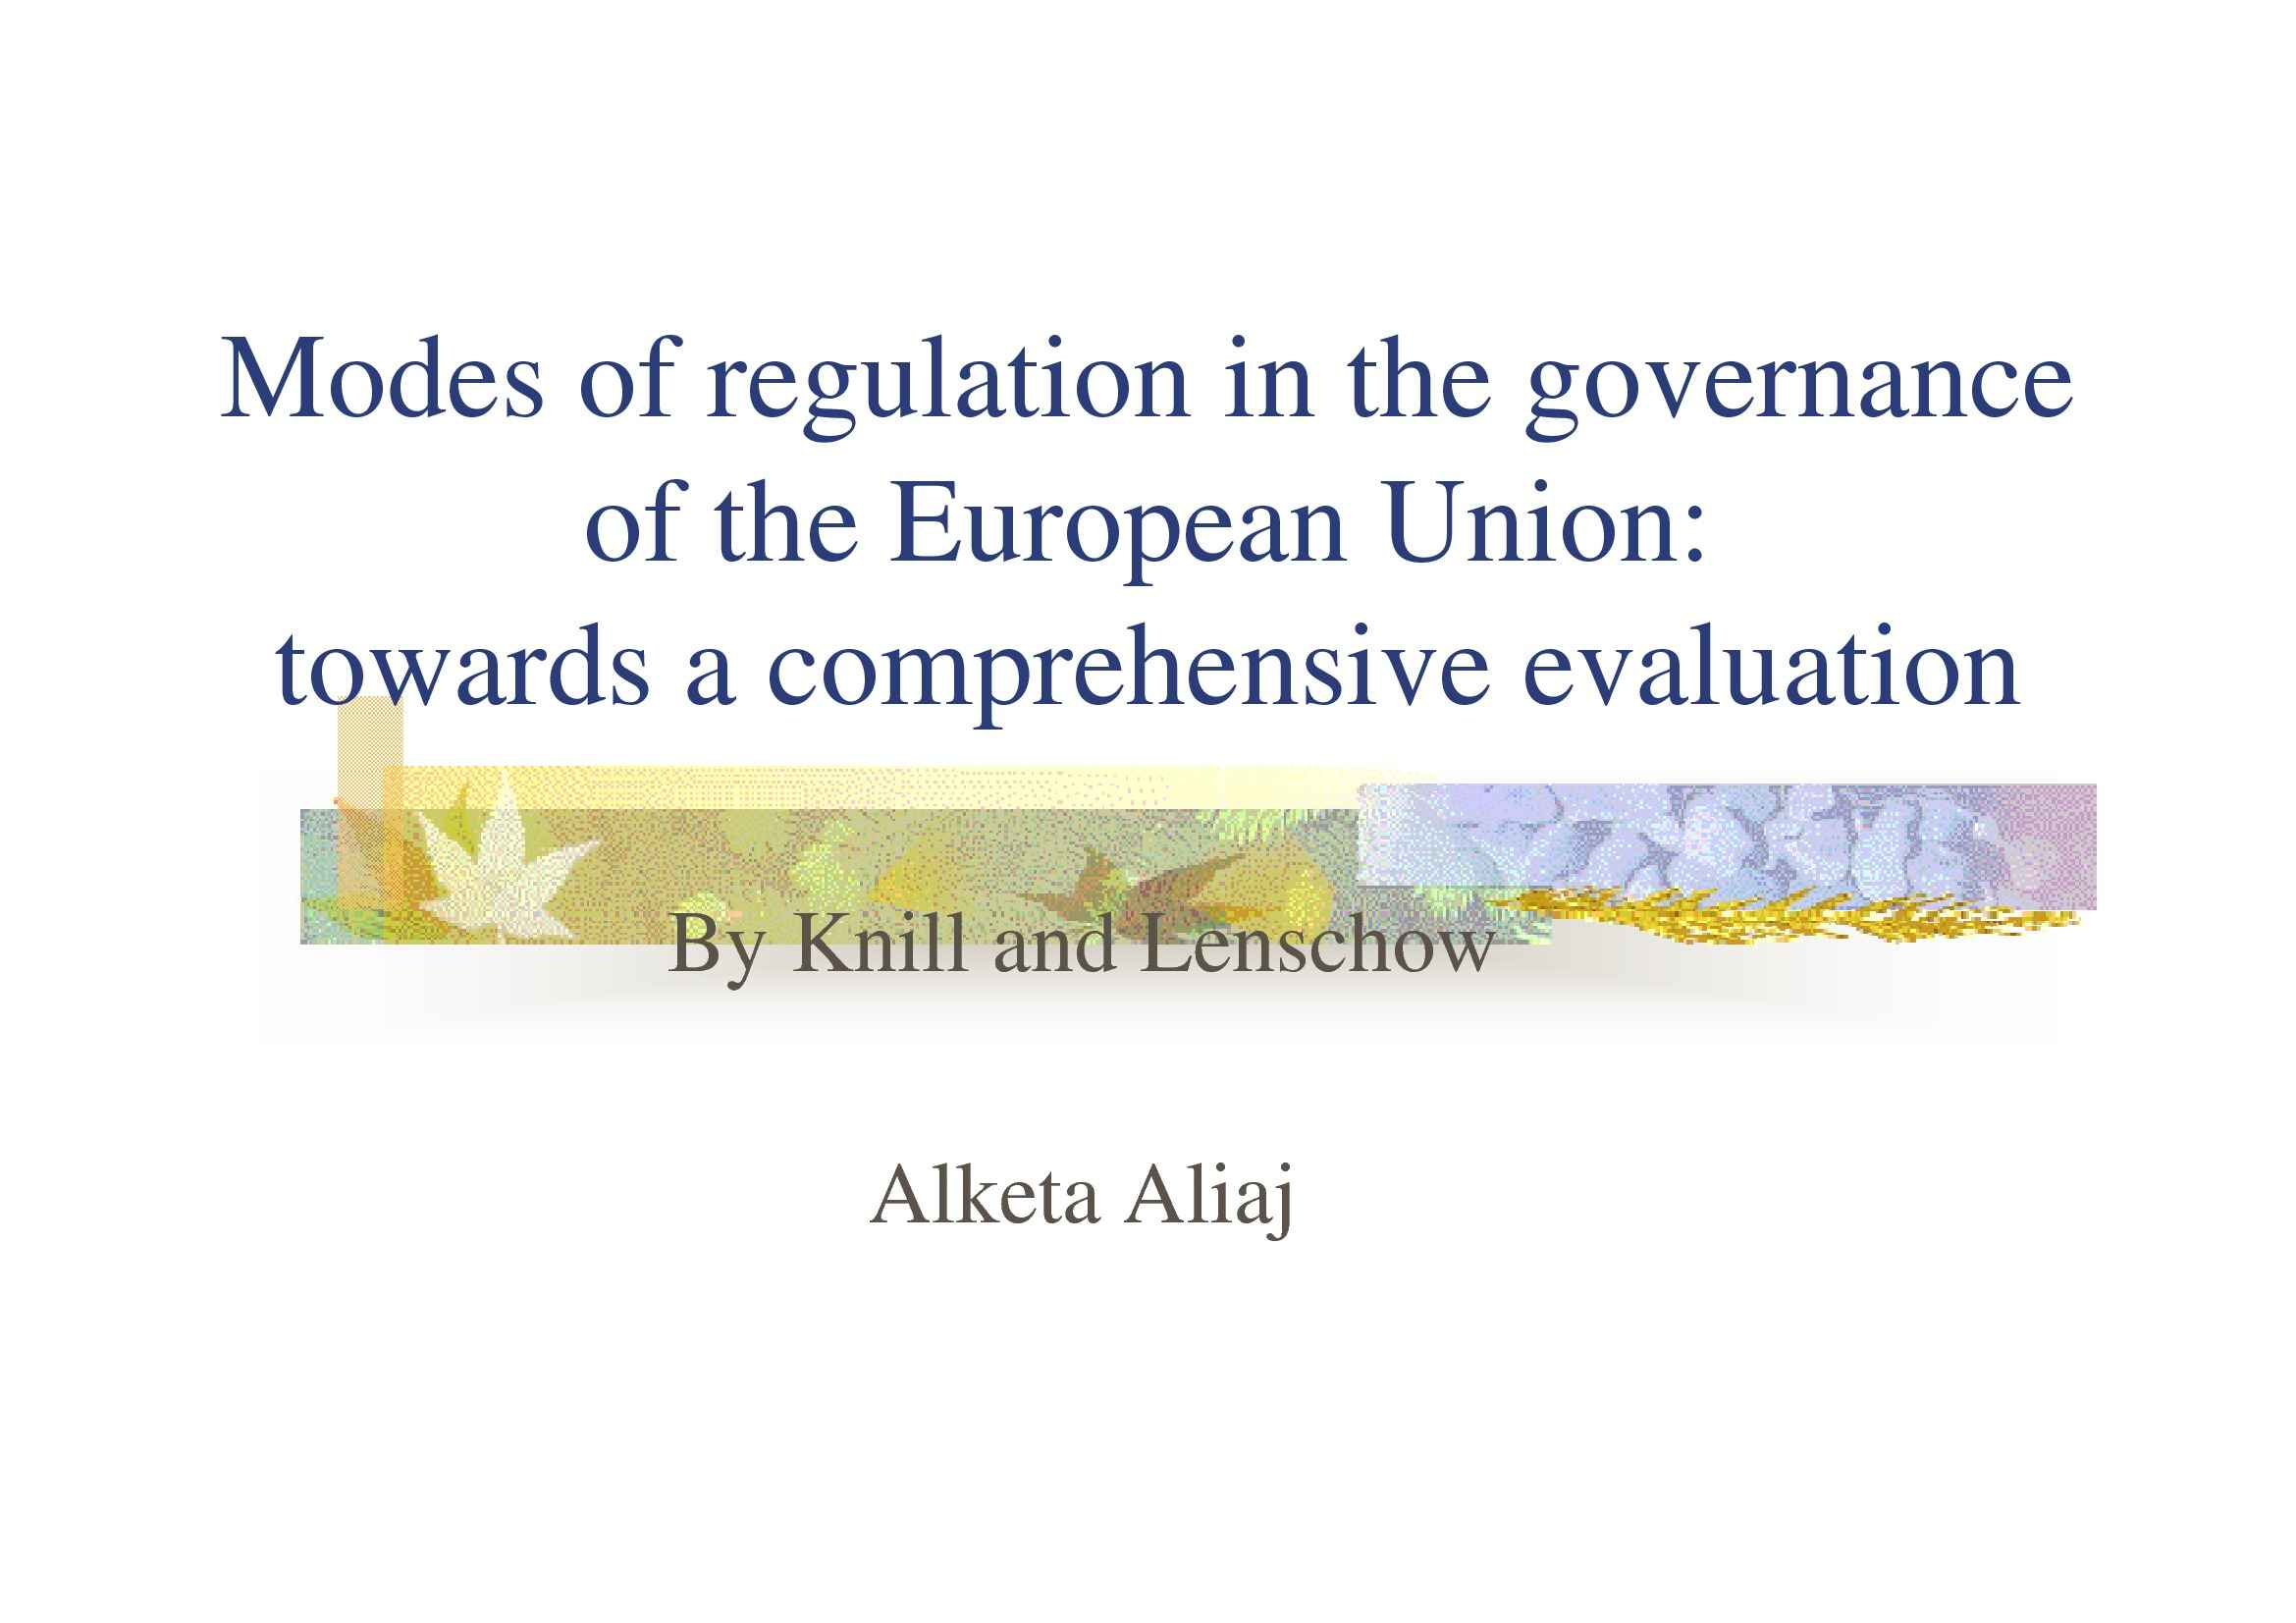 Modes of regulation in the governance of the European Union